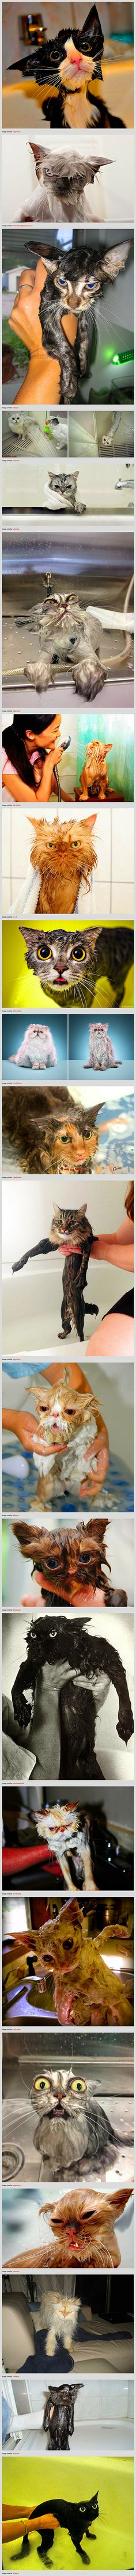 Because cats are widely considered to be the cool and cute overlords of the internet, we thought it was about time to bring them down a notch by showing you just how silly cats look when they get wet.